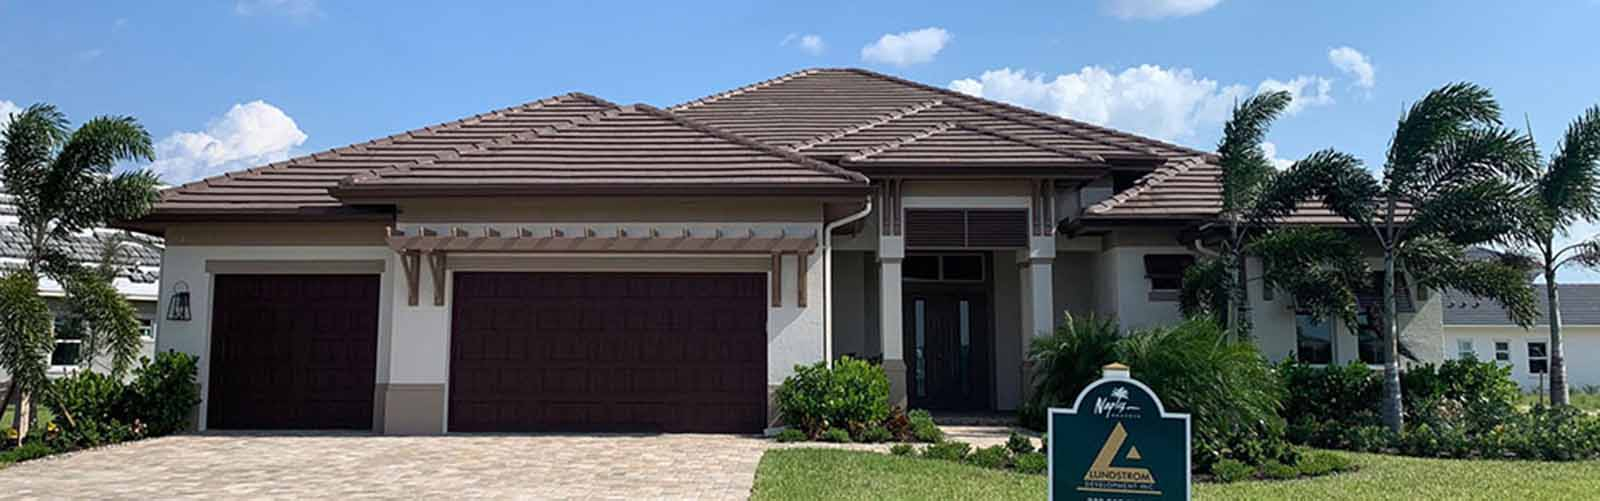 Lundstrom Development New Home at Naples Reserve with brown tile roof and paver driveway